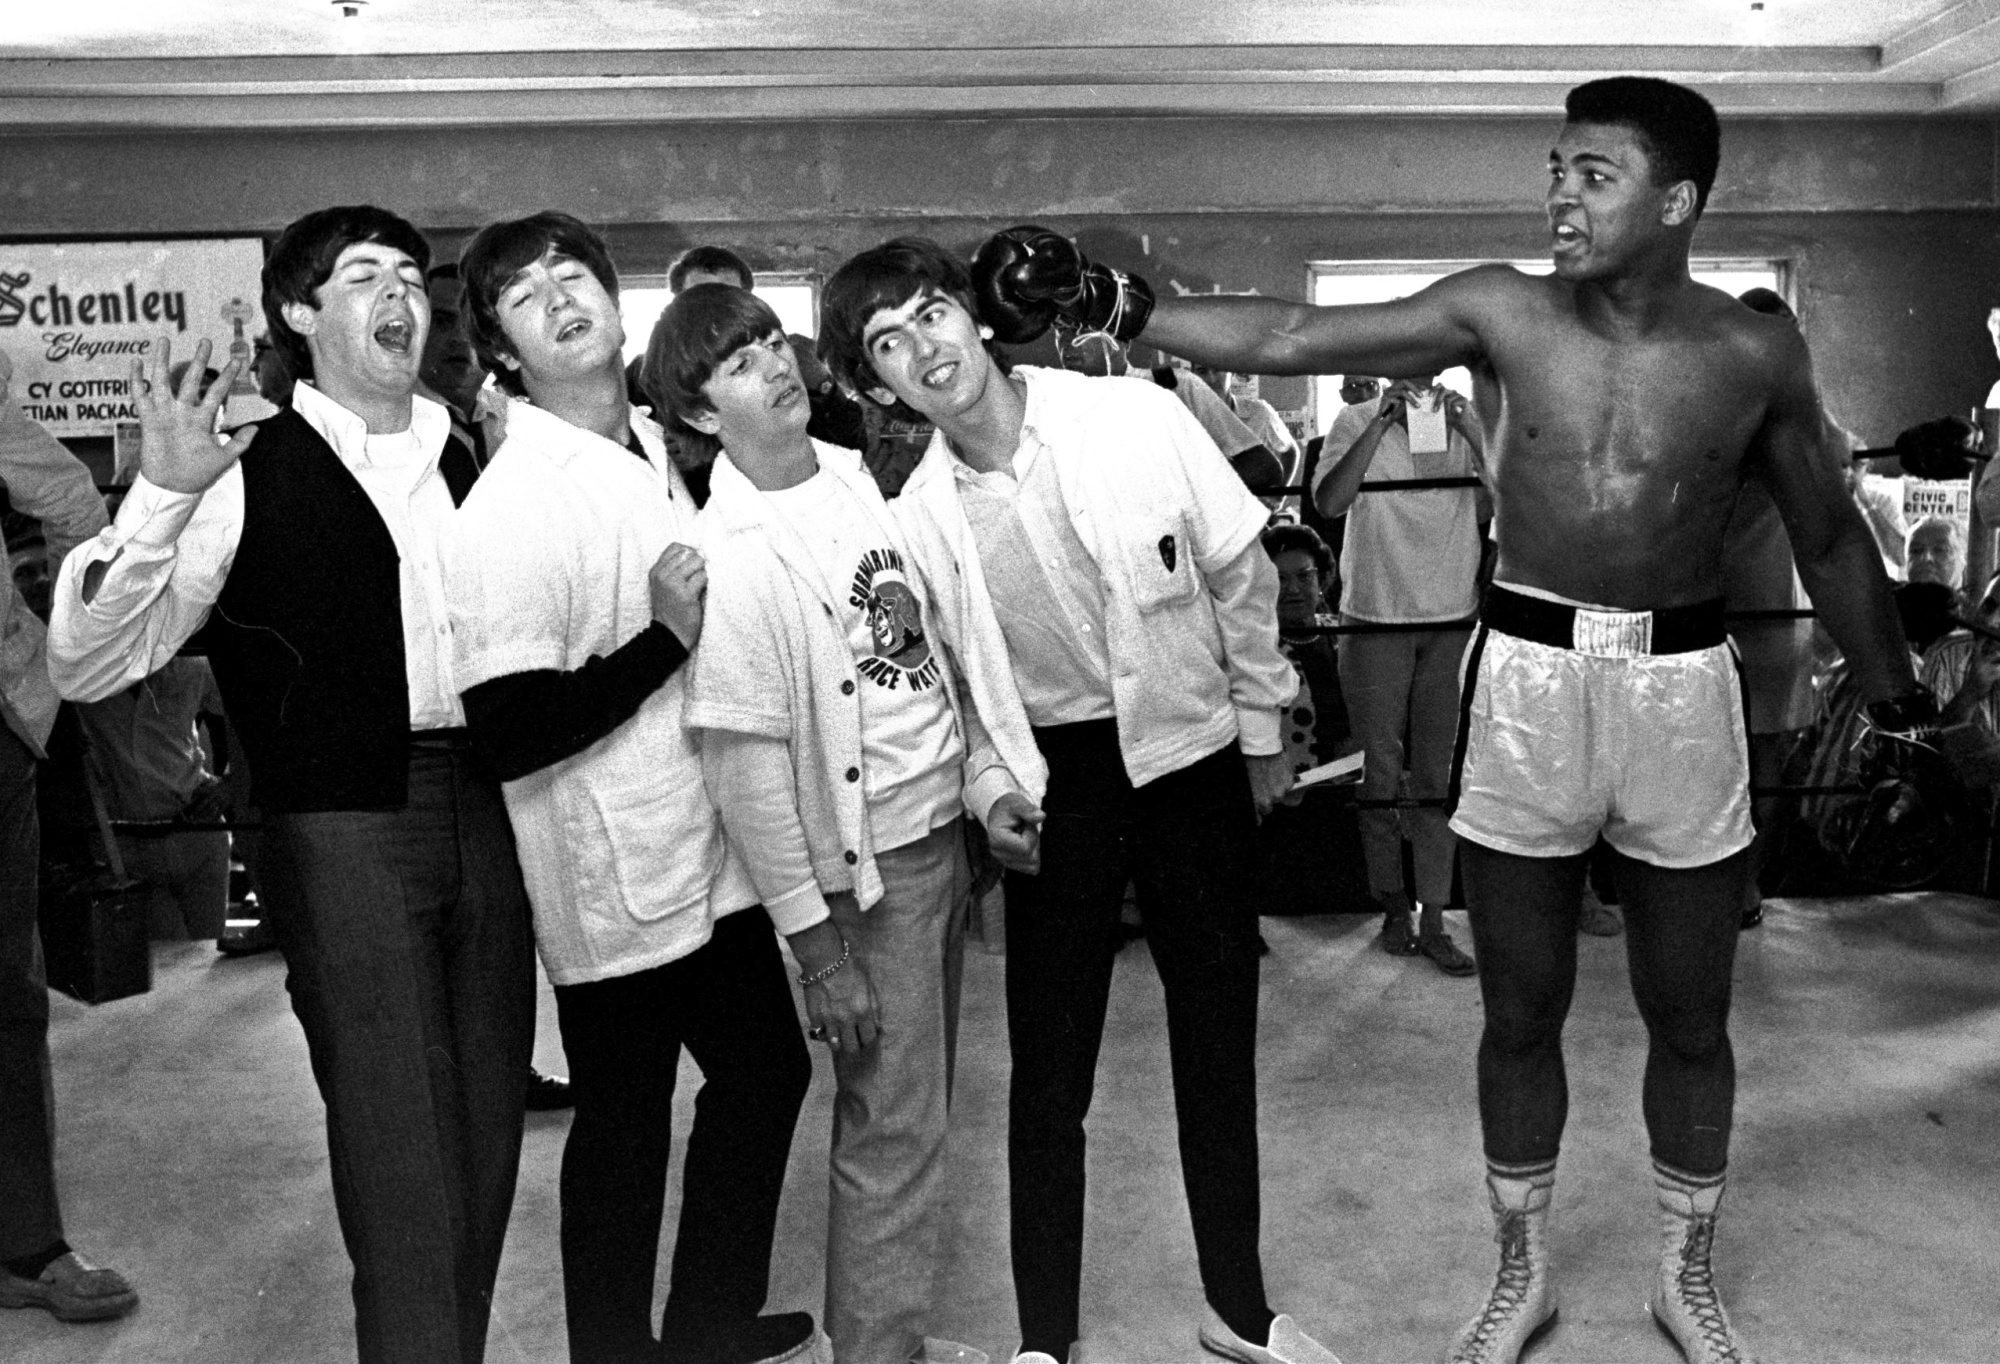 The Beatles, from left, Paul McCartney, John Lennon, Ringo Starr, and George Harrison, take a fake blow from Muhammad Ali, while visiting the heavyweight contender at his training camp in Miami Beach, Florida, Feb. 18, 1964. (AP Photo)